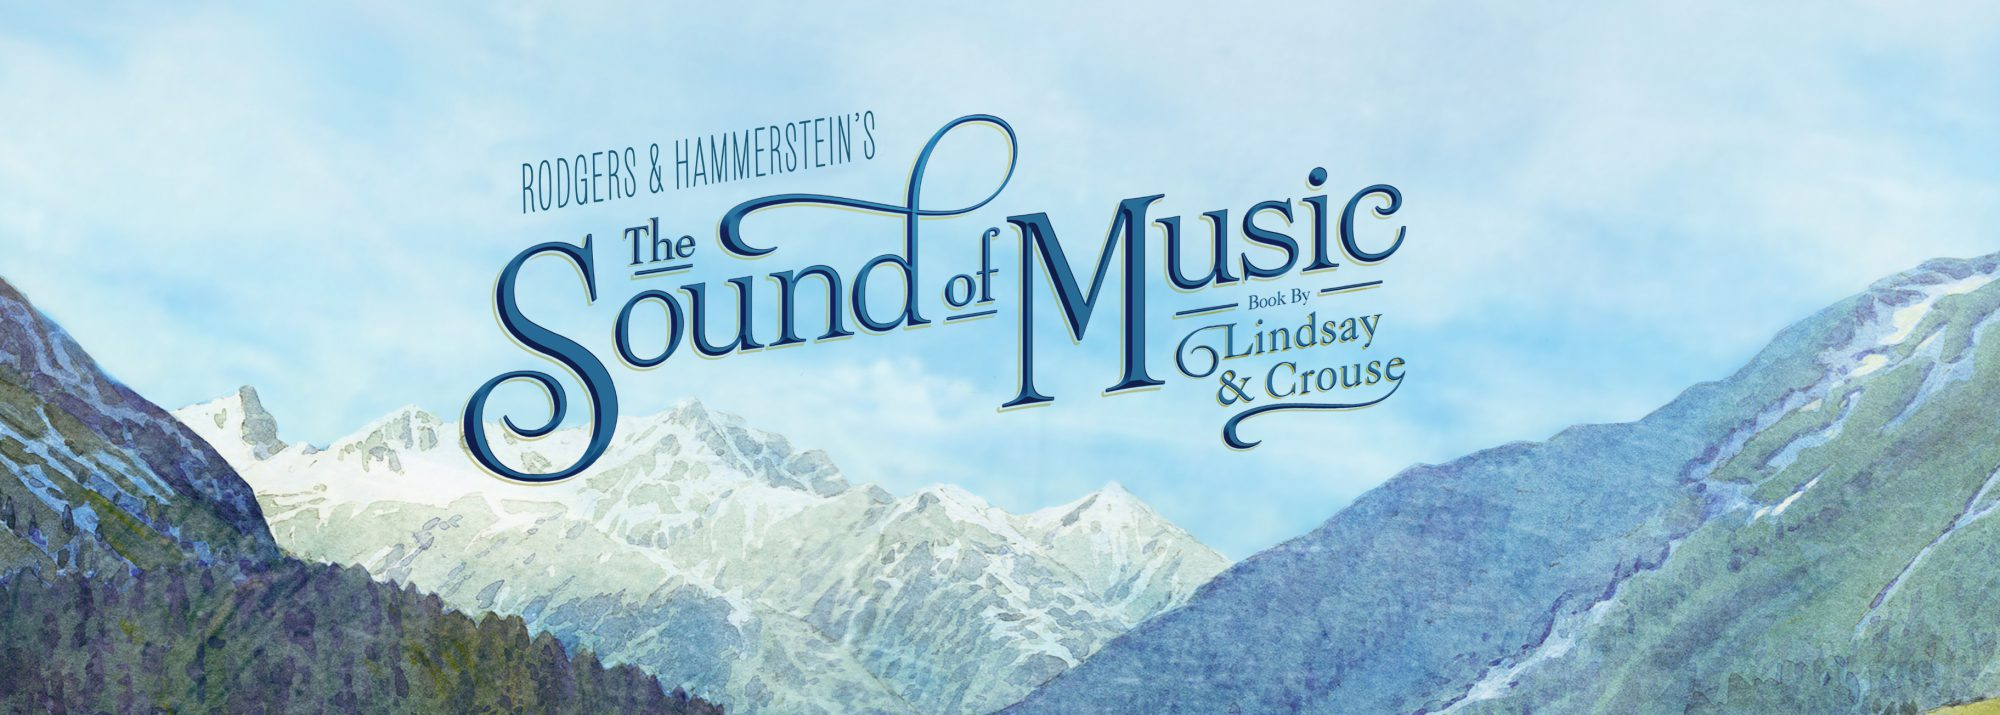 The Sound of Music Header